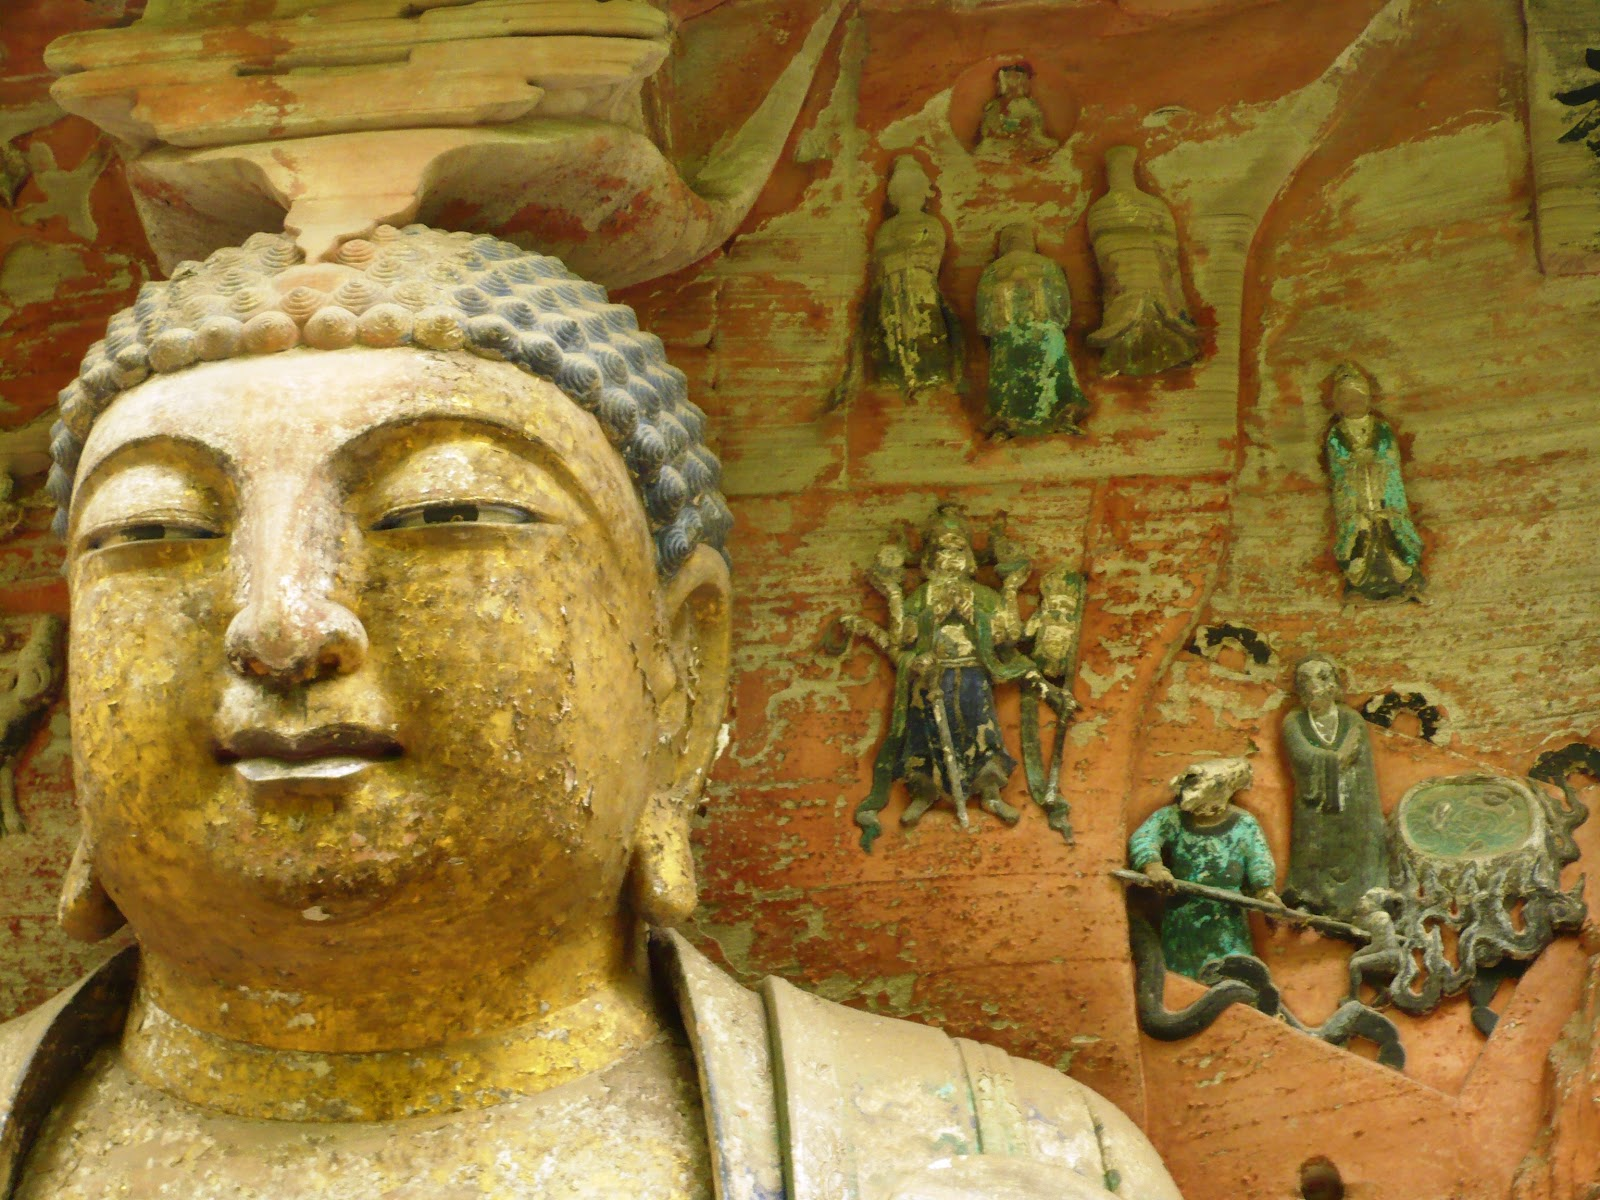 grace buddhist dating site Time to get the leathers out  meditation with vaguely buddhist overtones (grace makes beauty out of  couk | about this site join our dating site today.